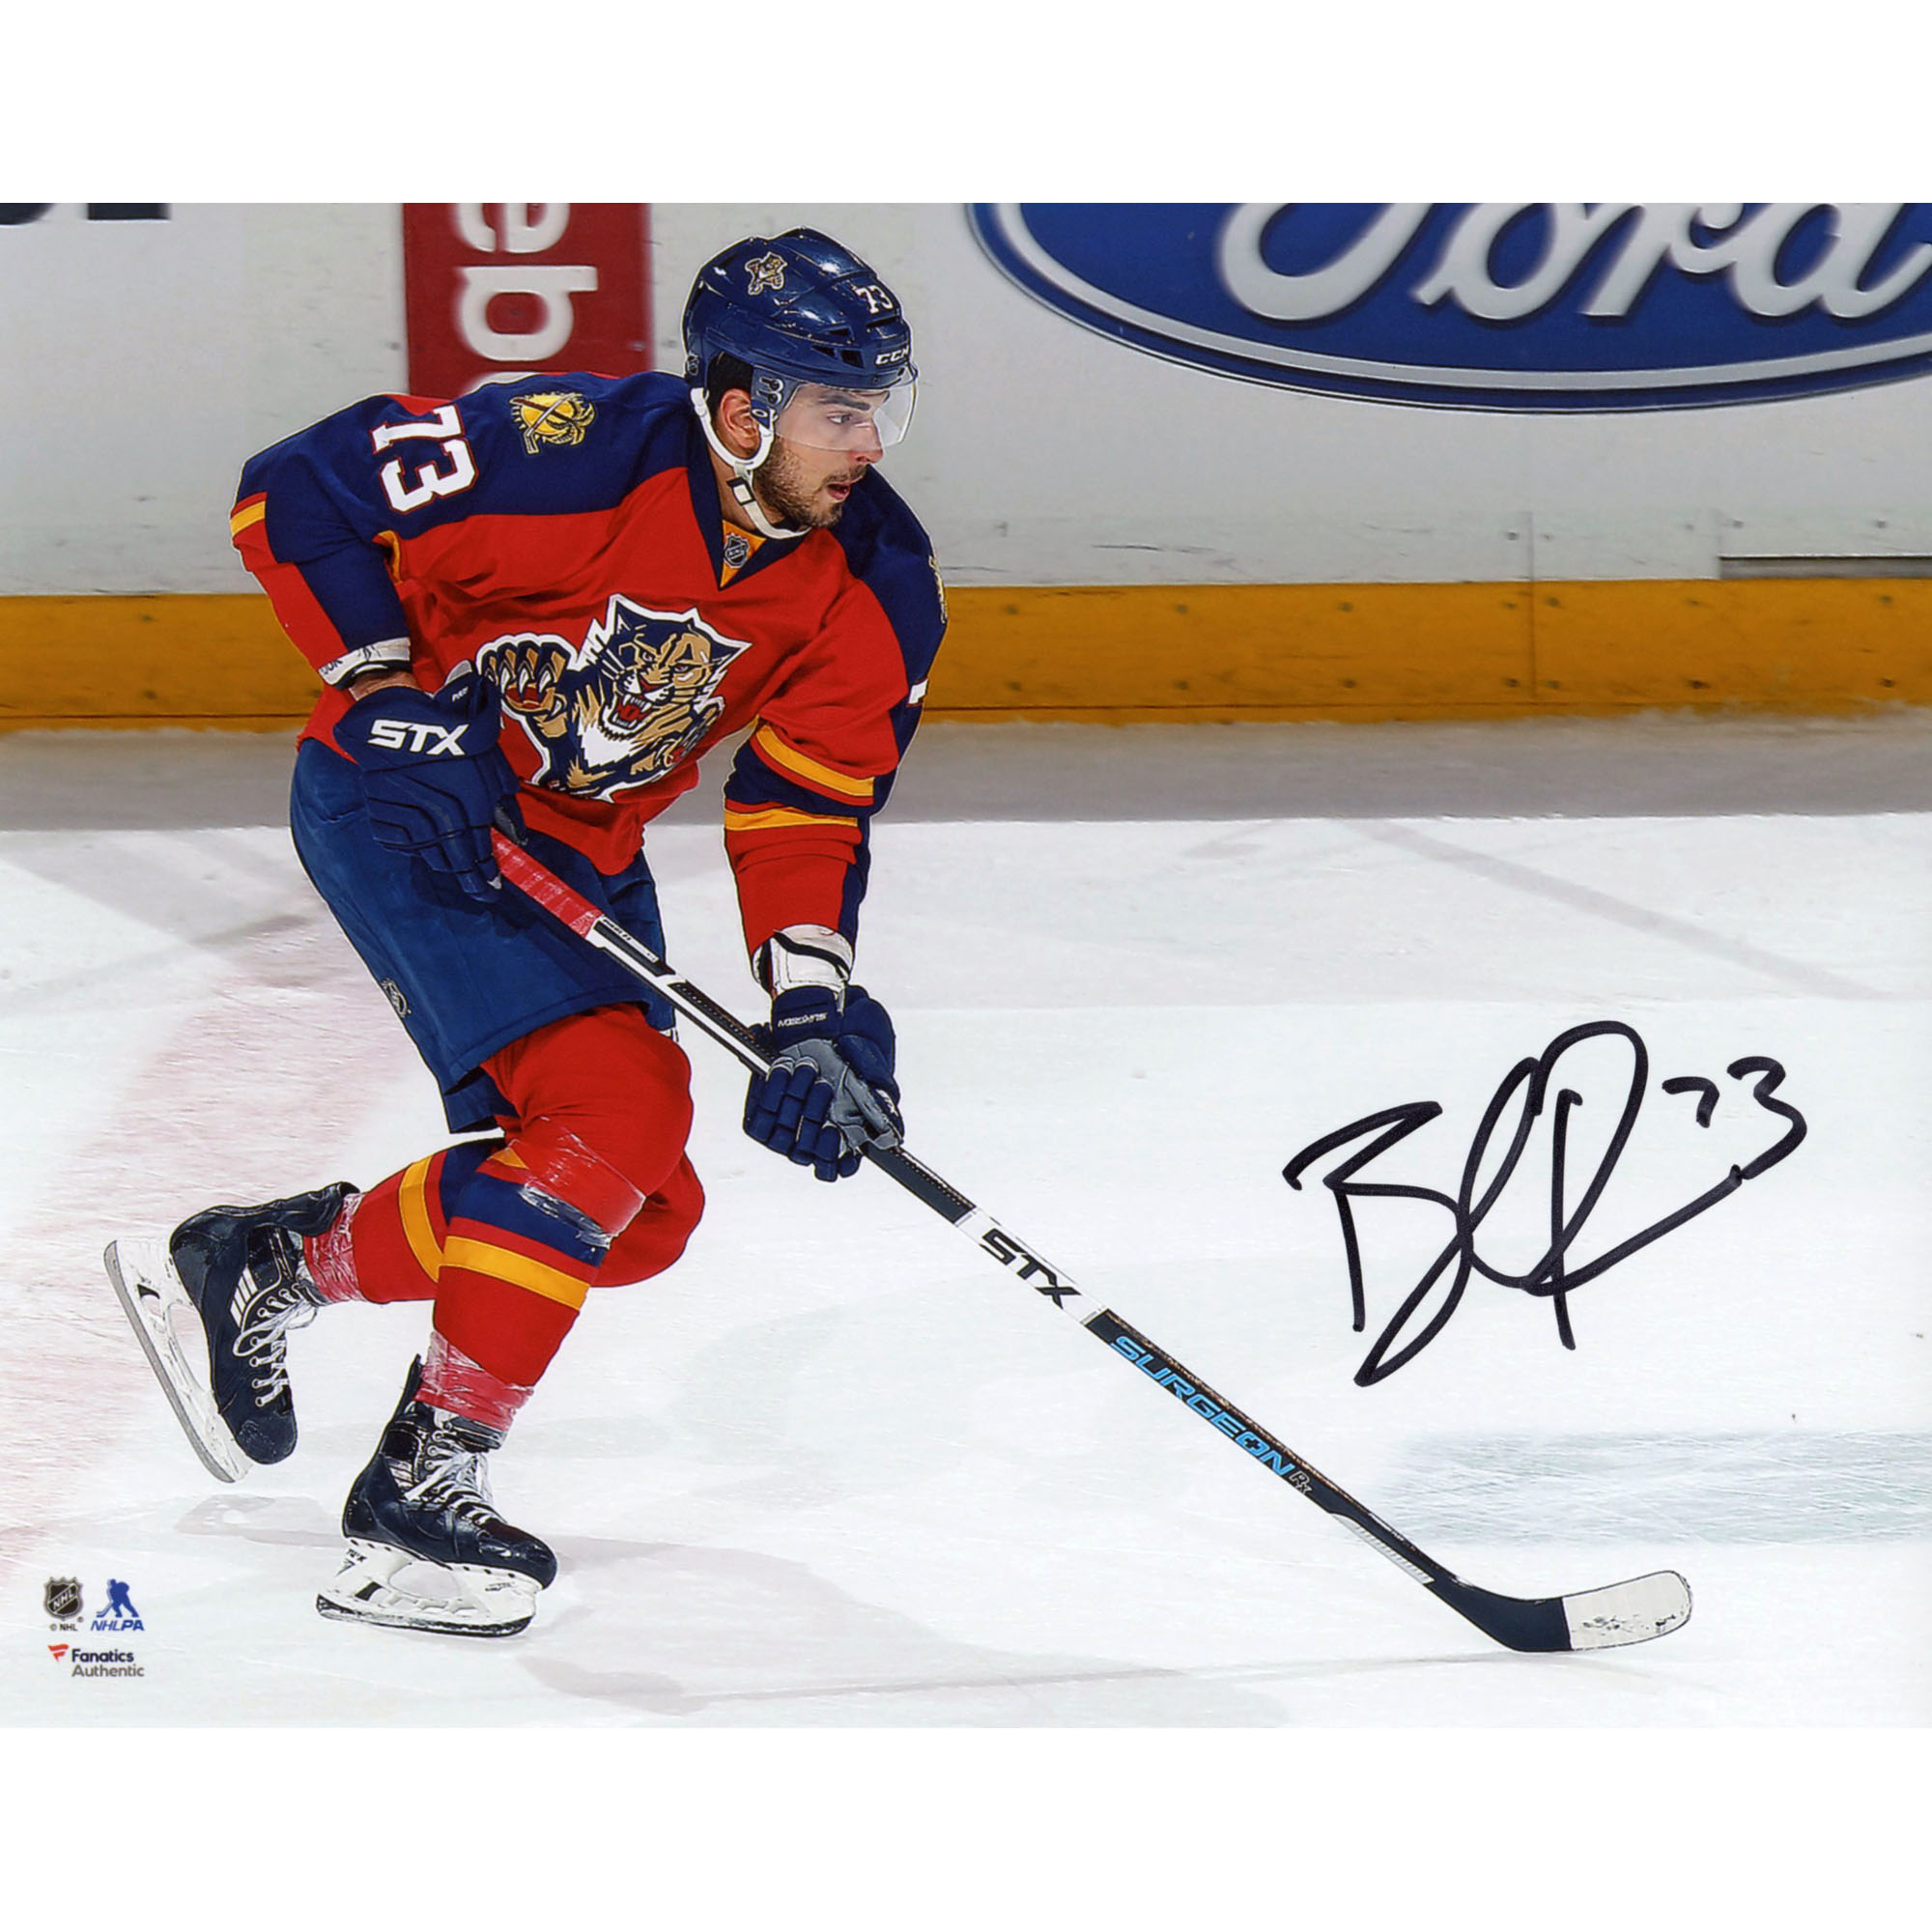 """Brandon Pirri Florida Panthers Fanatics Authentic Autographed 8"""" x 10"""" Red Jersey Skating With Puck Photograph - No Size"""